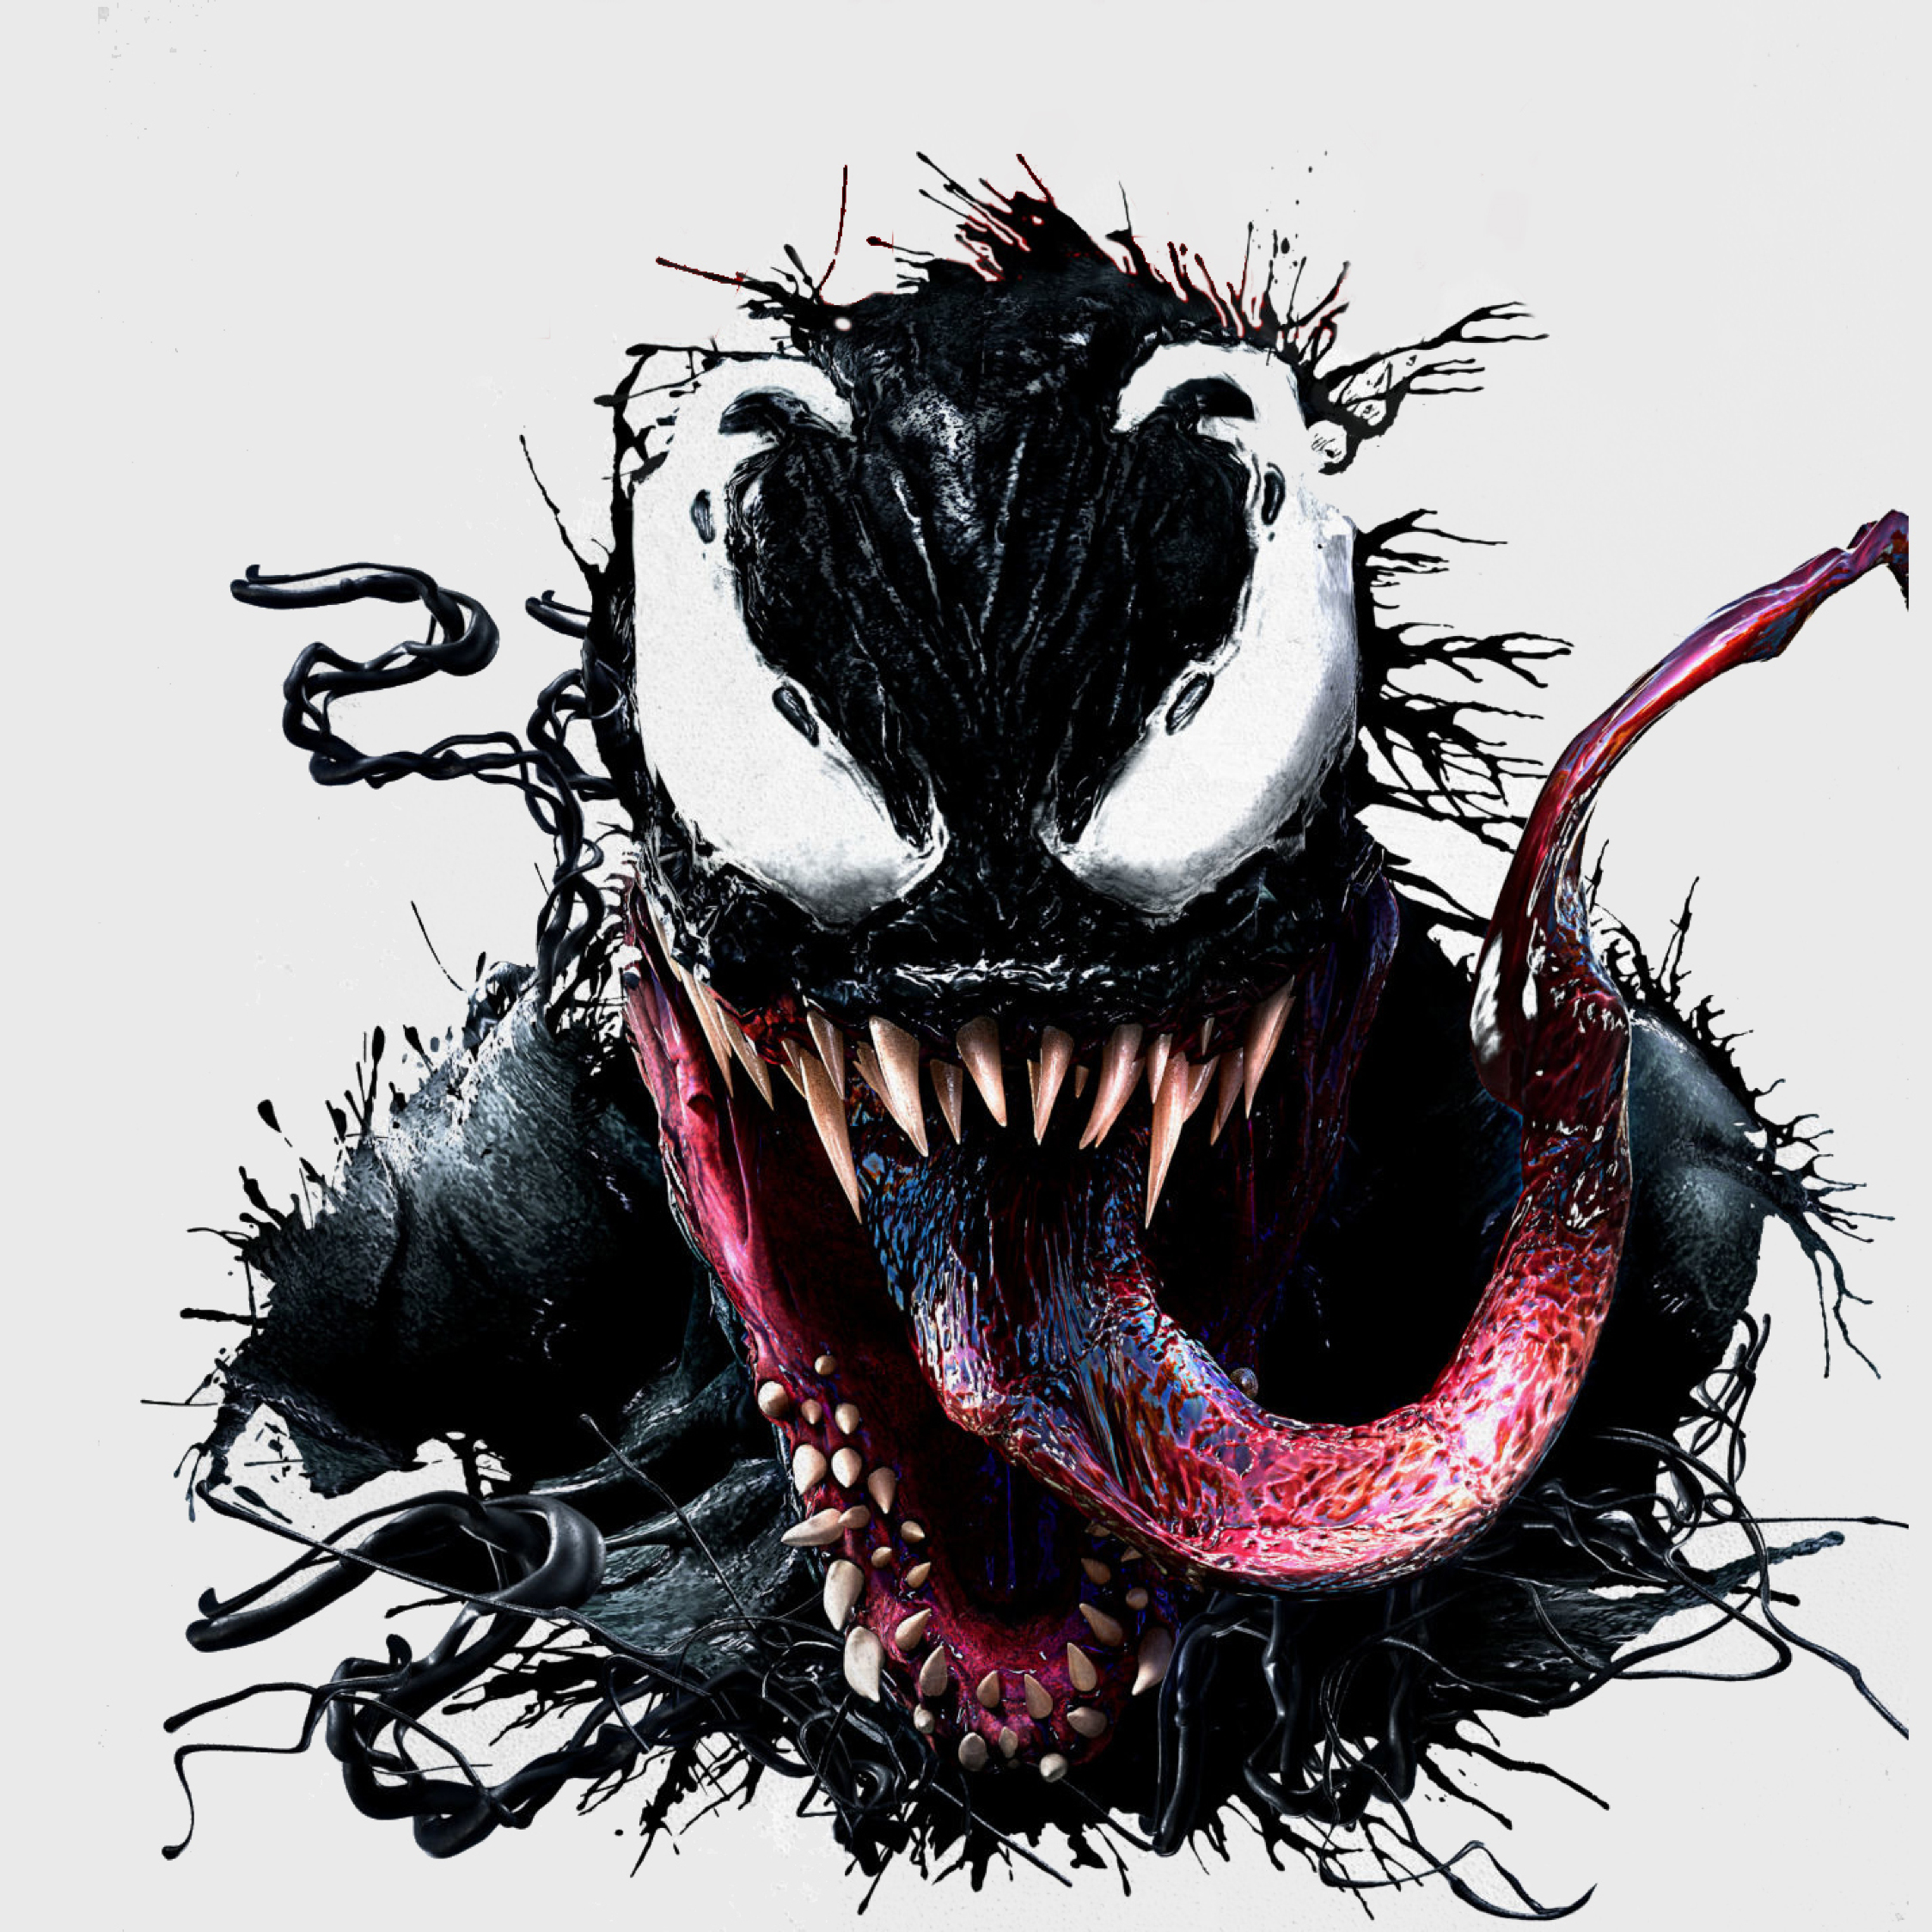 Download Venom 2018 Movie Imax Poster 7680x4320 Resolution